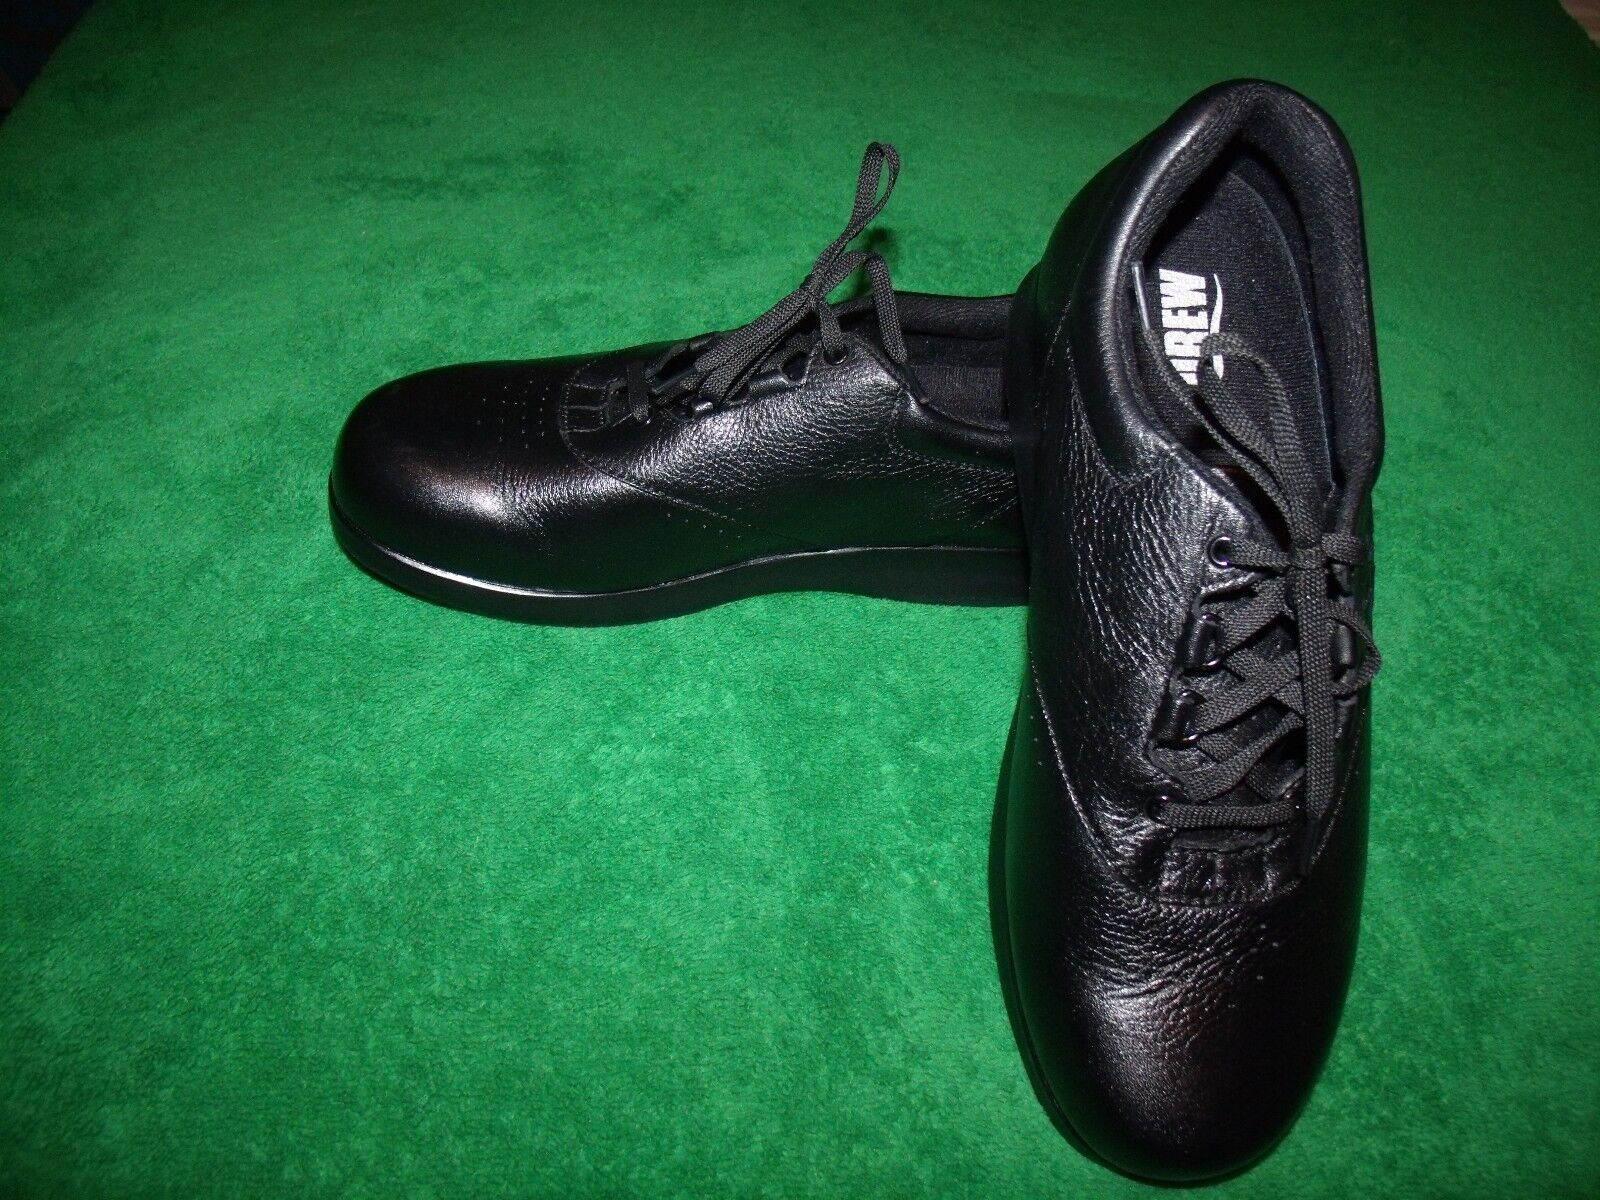 Women's DREW Parade II Leather Therapeutic shoe size 9.5W